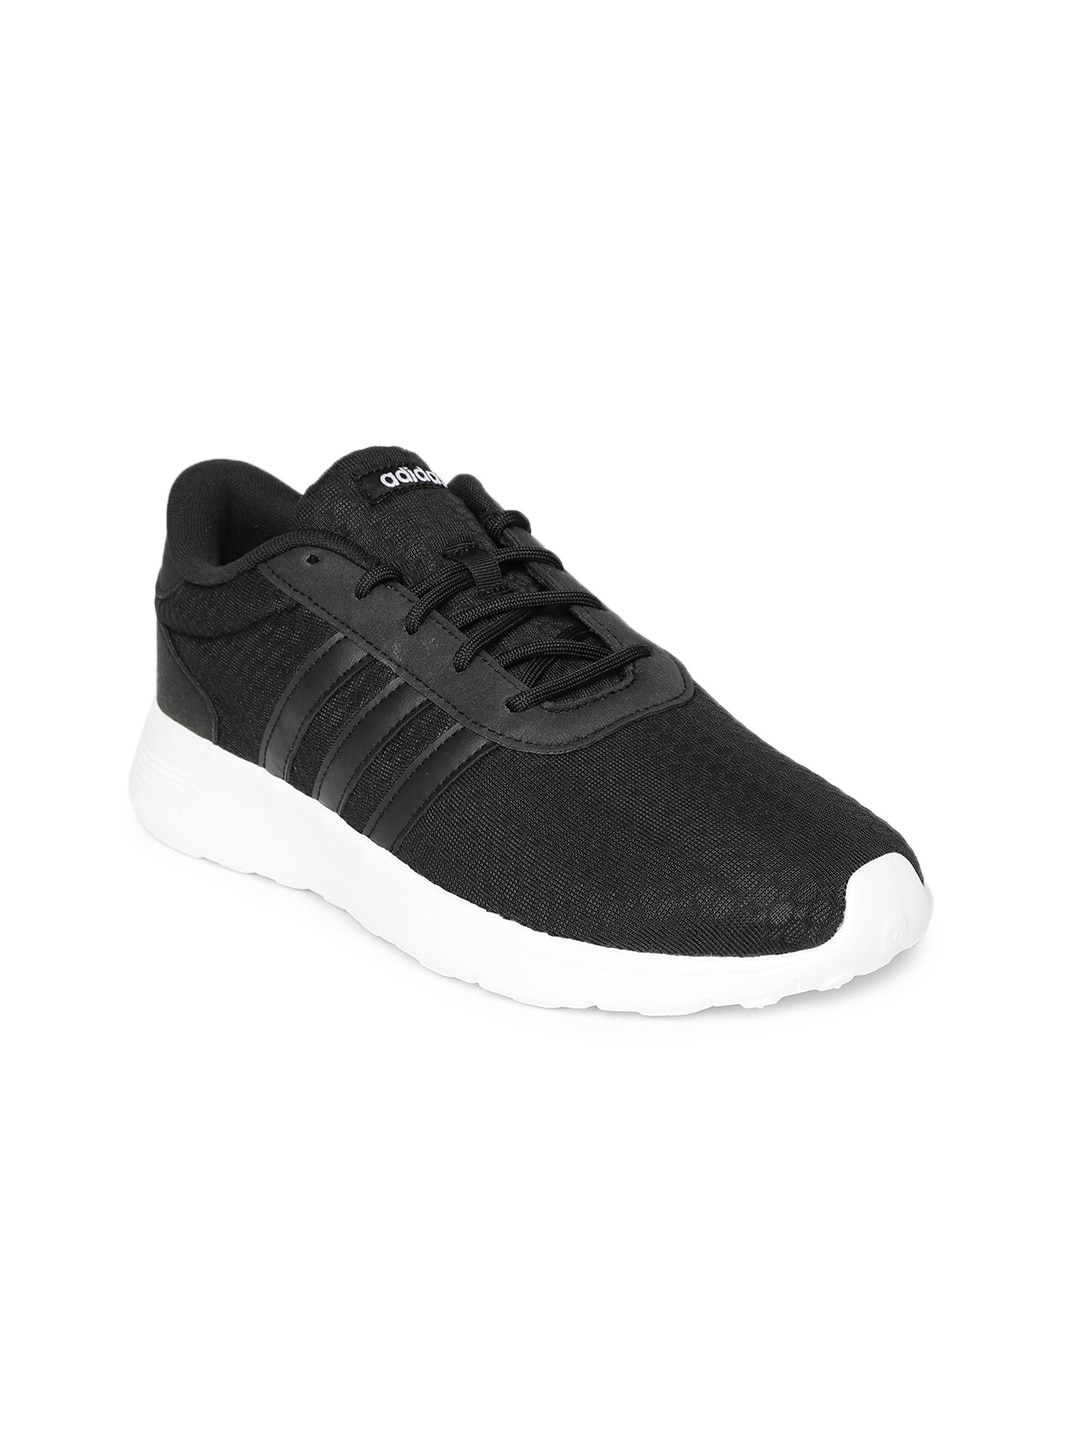 37e25a8b7a1 Adidas Sports Shoes - Buy Addidas Sports Shoes Online